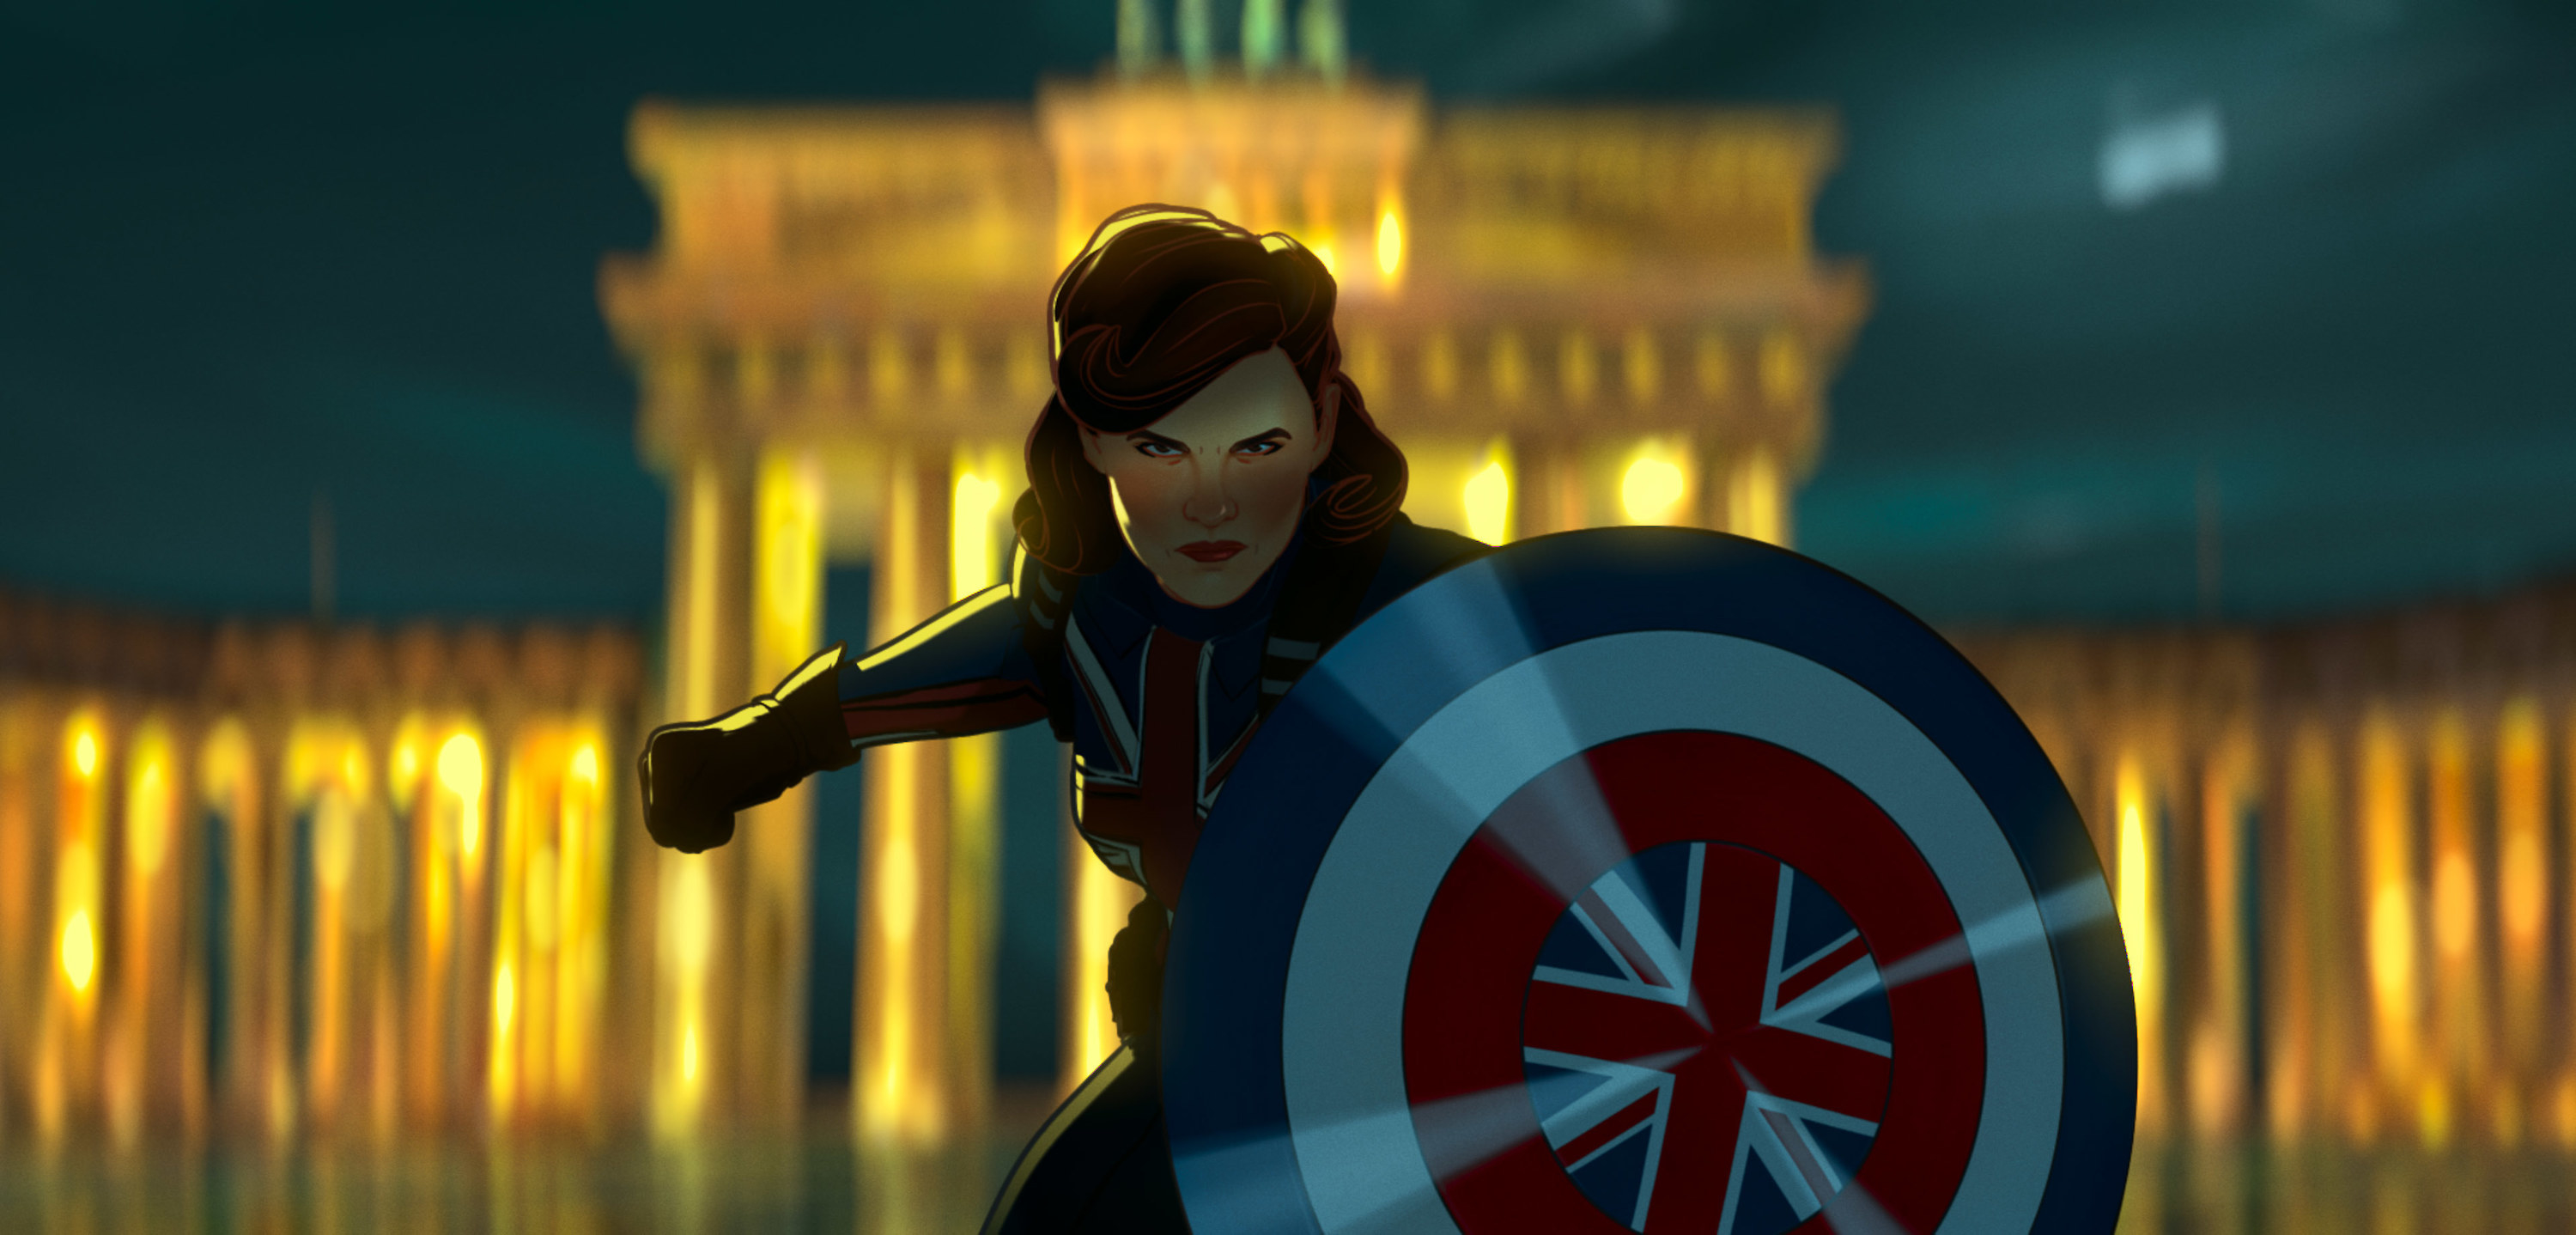 Agent Carter stands with a shield in a fighting pose